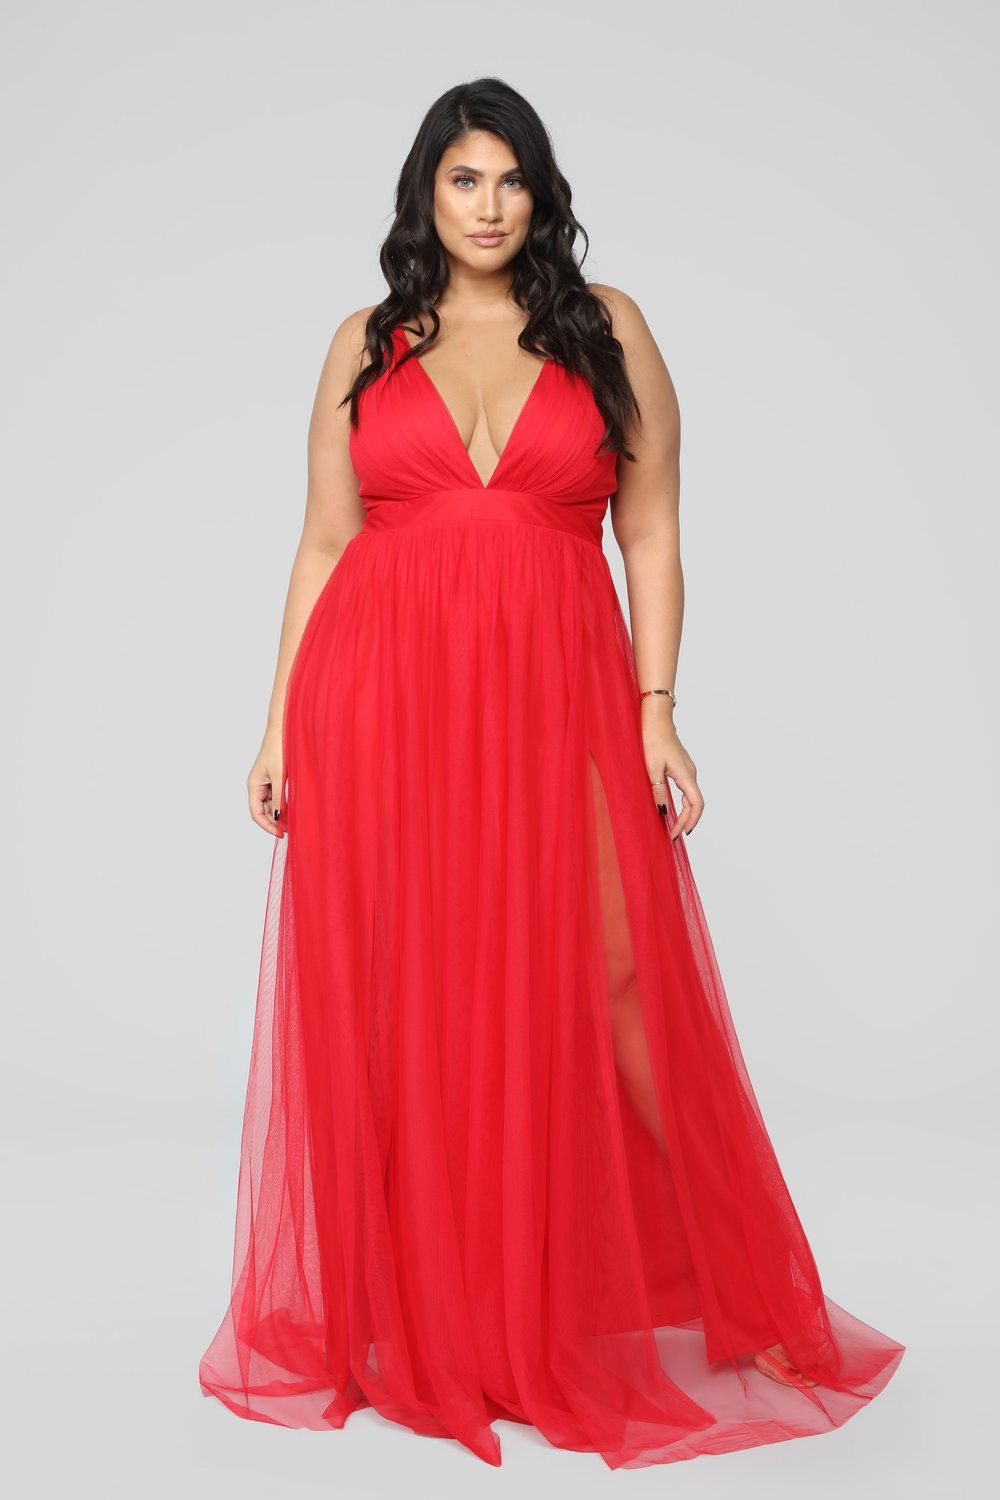 On The Runway Maxi Dress Red Plus size red dress